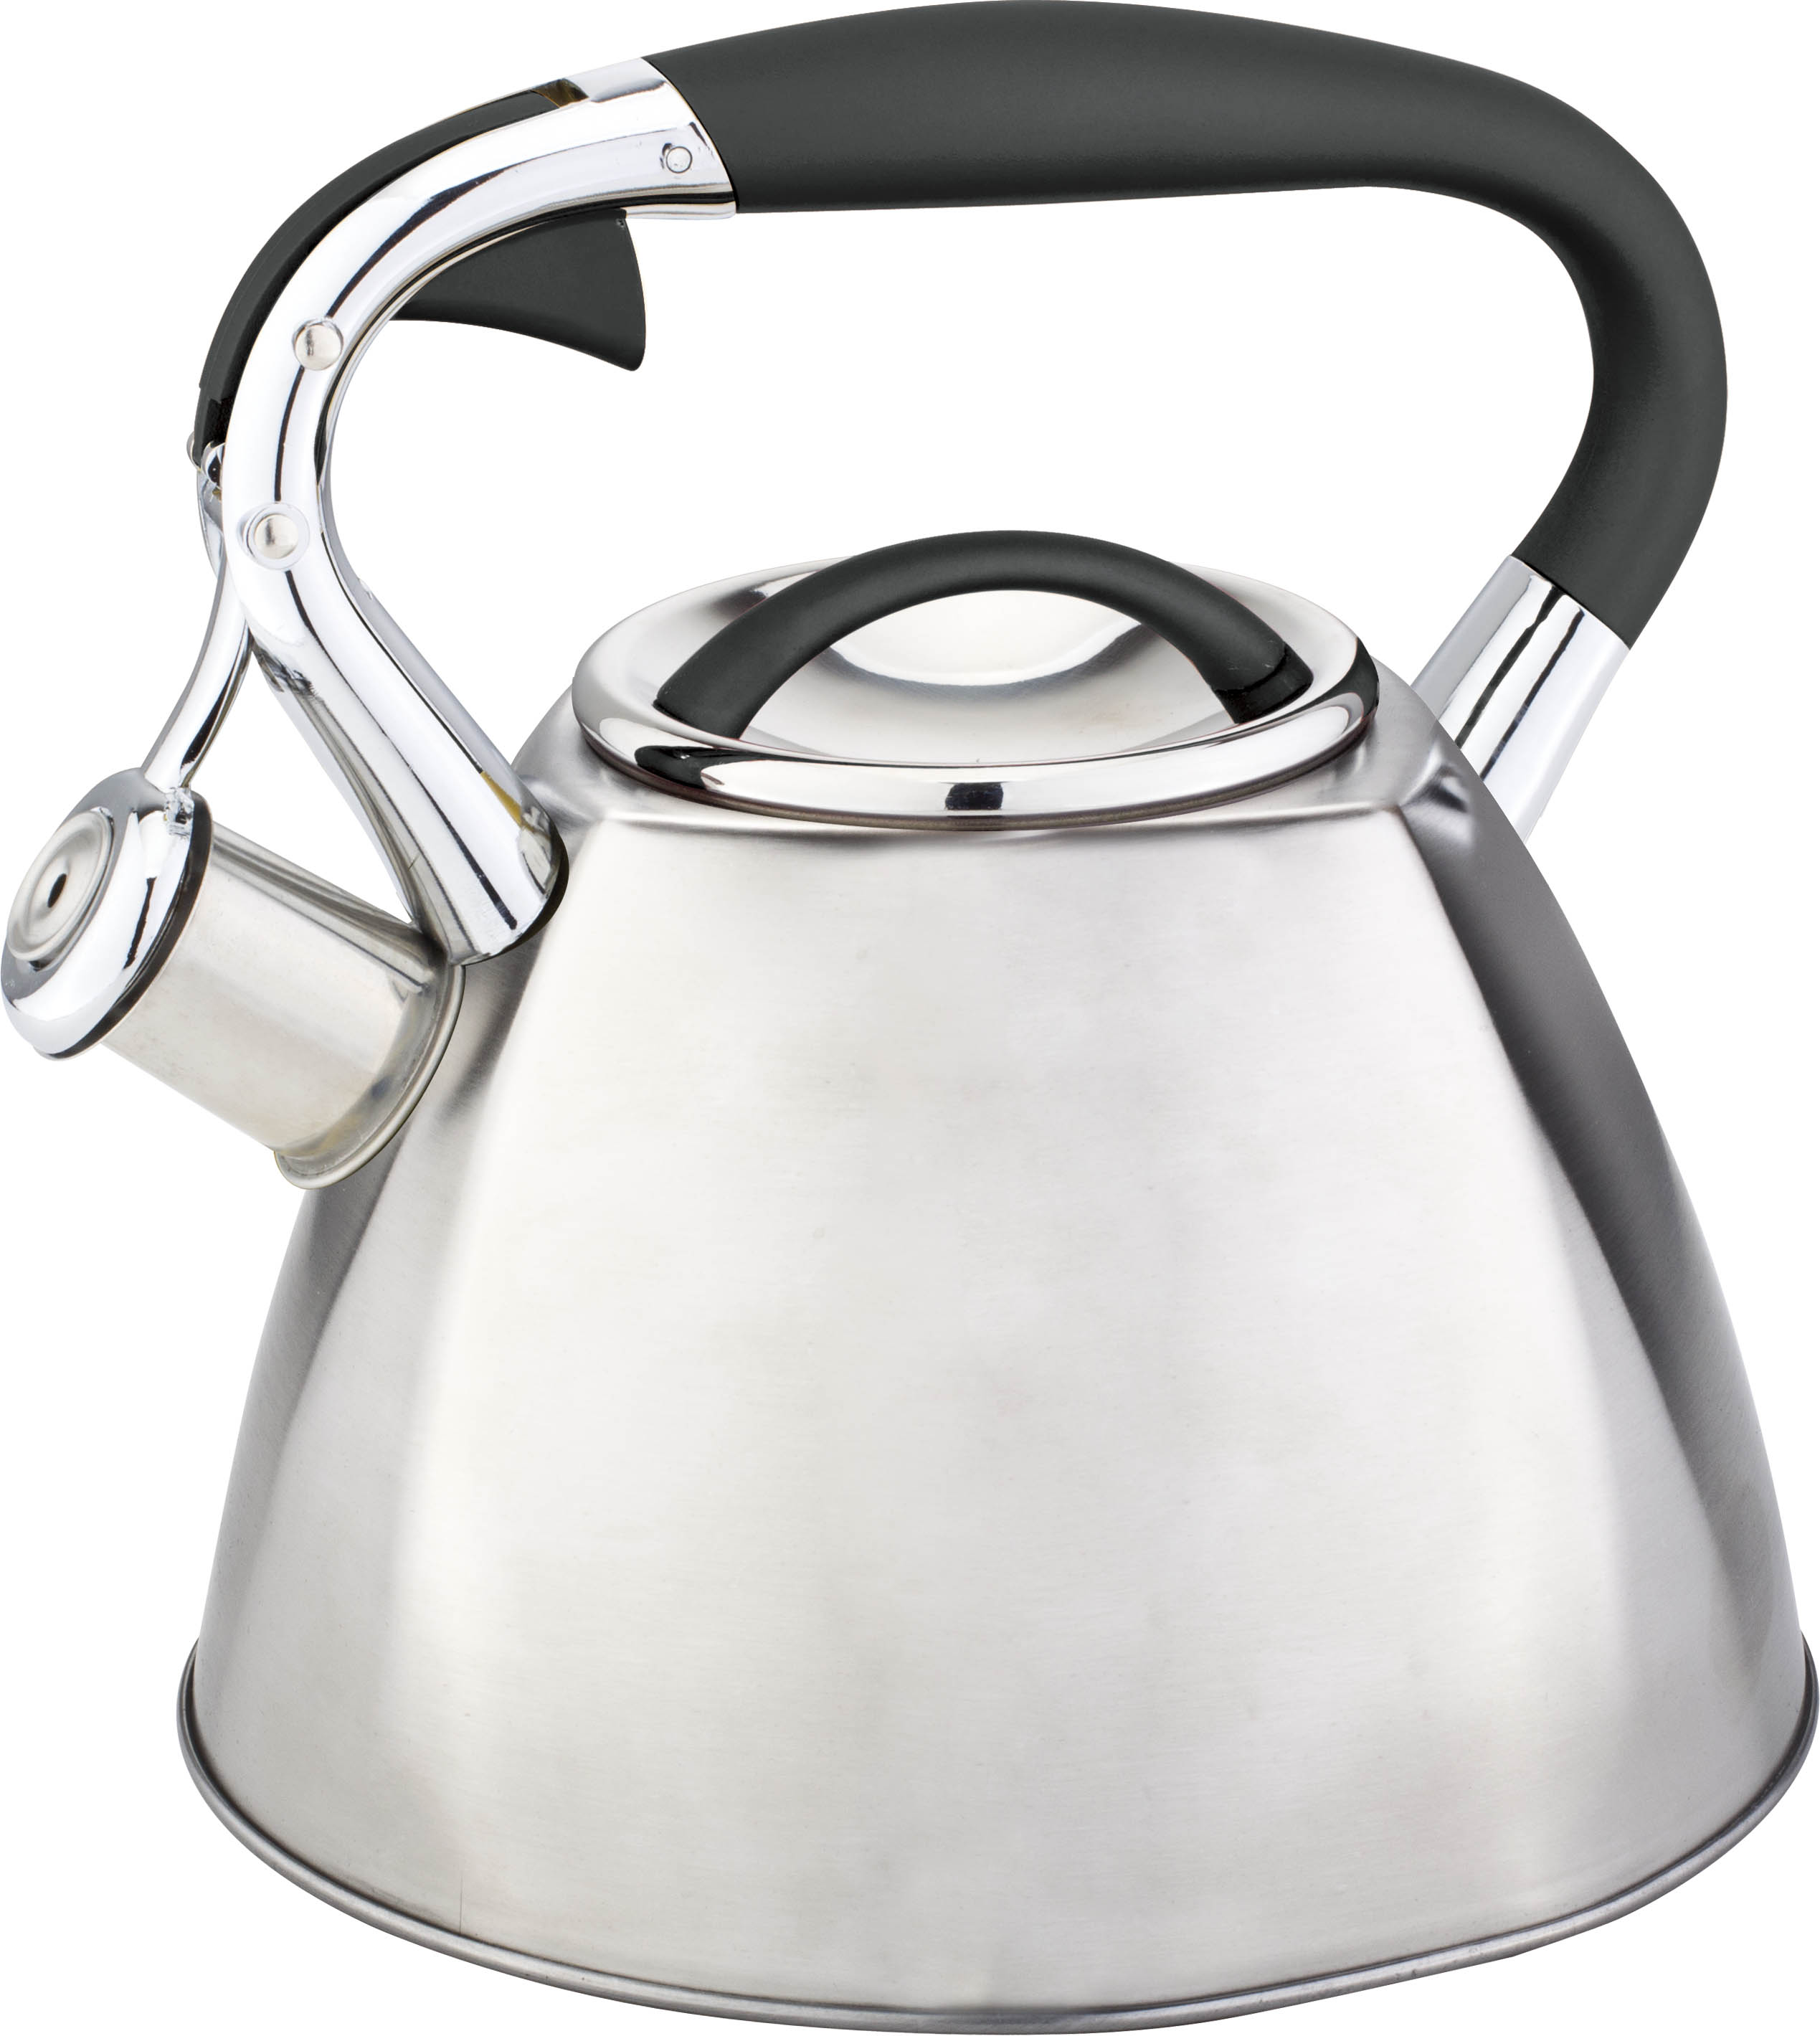 An electric kettle boils water